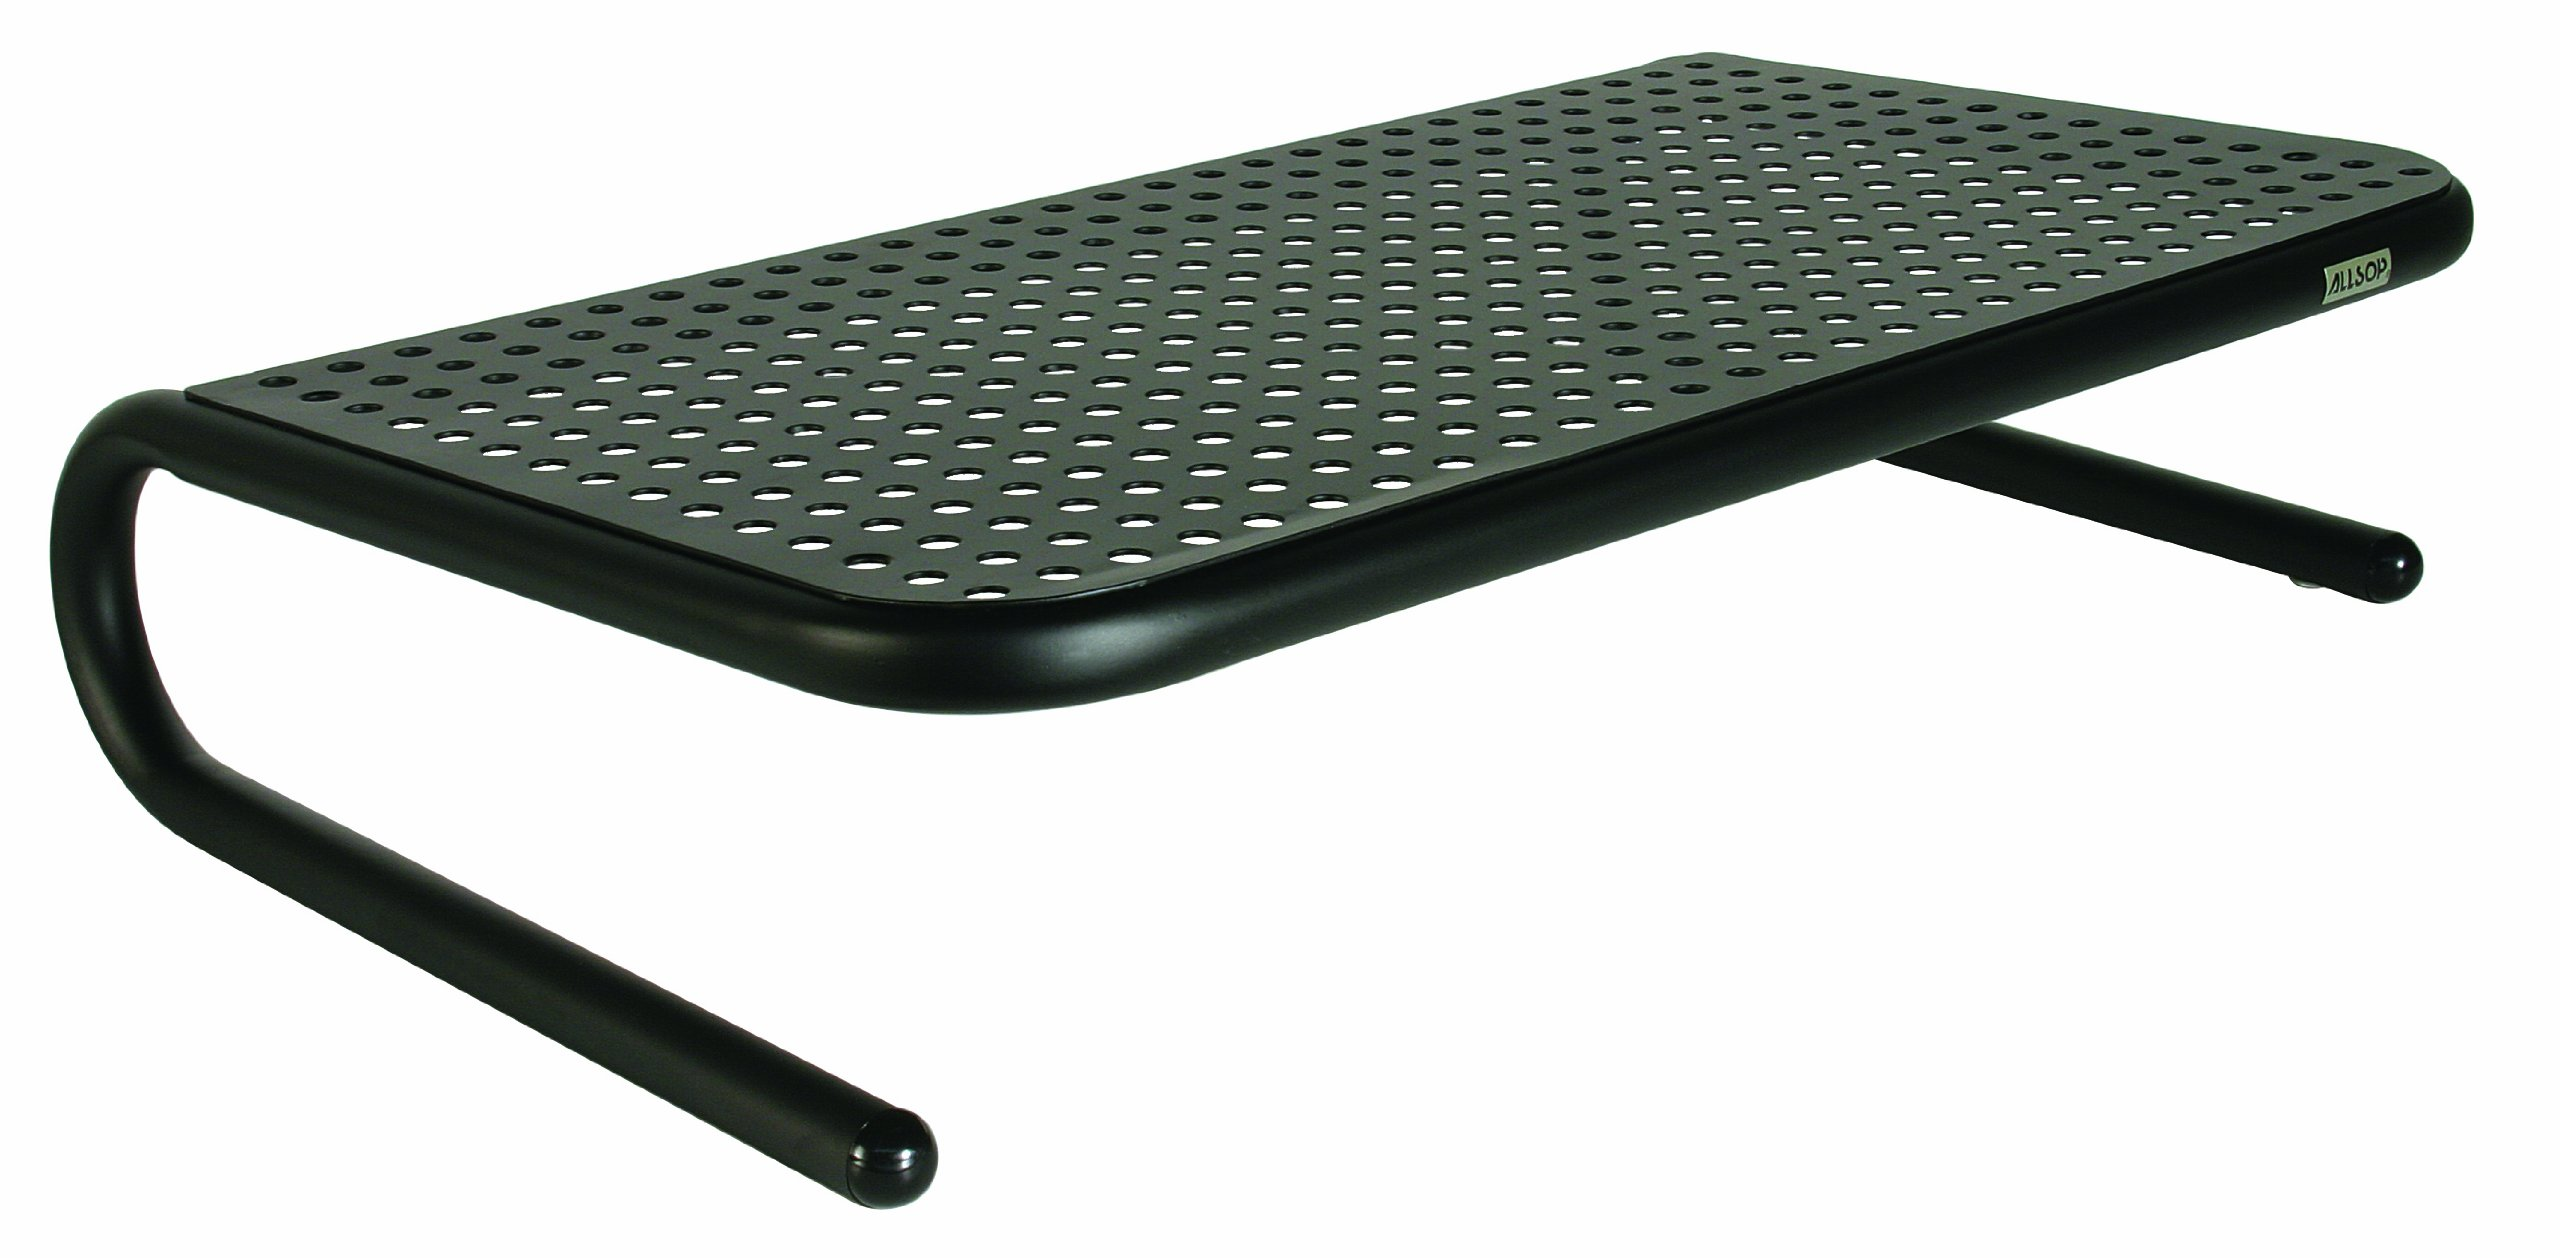 Allsop Large Metal Art Monitor Stand Holds 50 Lbs With Keyboard Storage Space.. 10